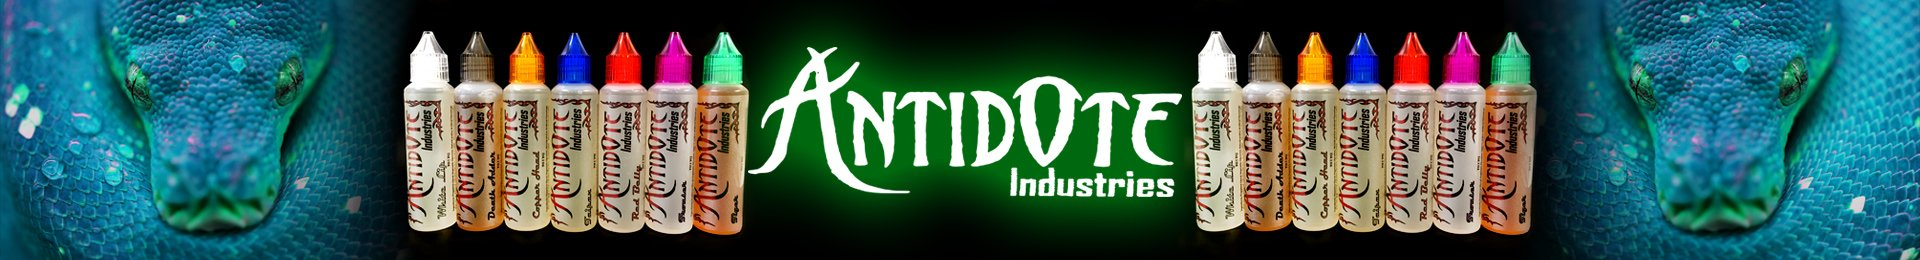 antidote_banner